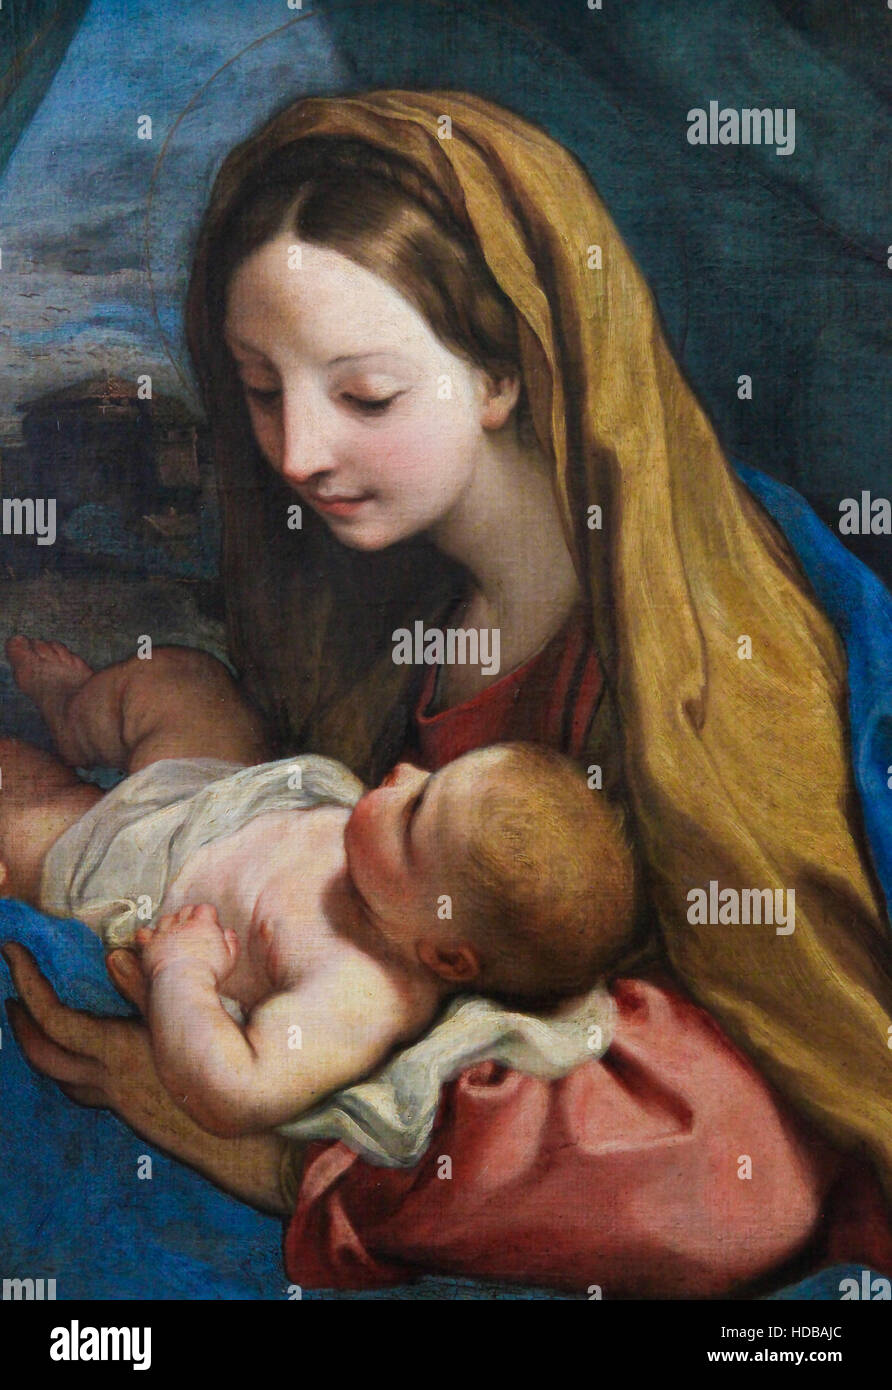 Painting (1660) depicting Mother Mary and Child Jesus - Stock Image